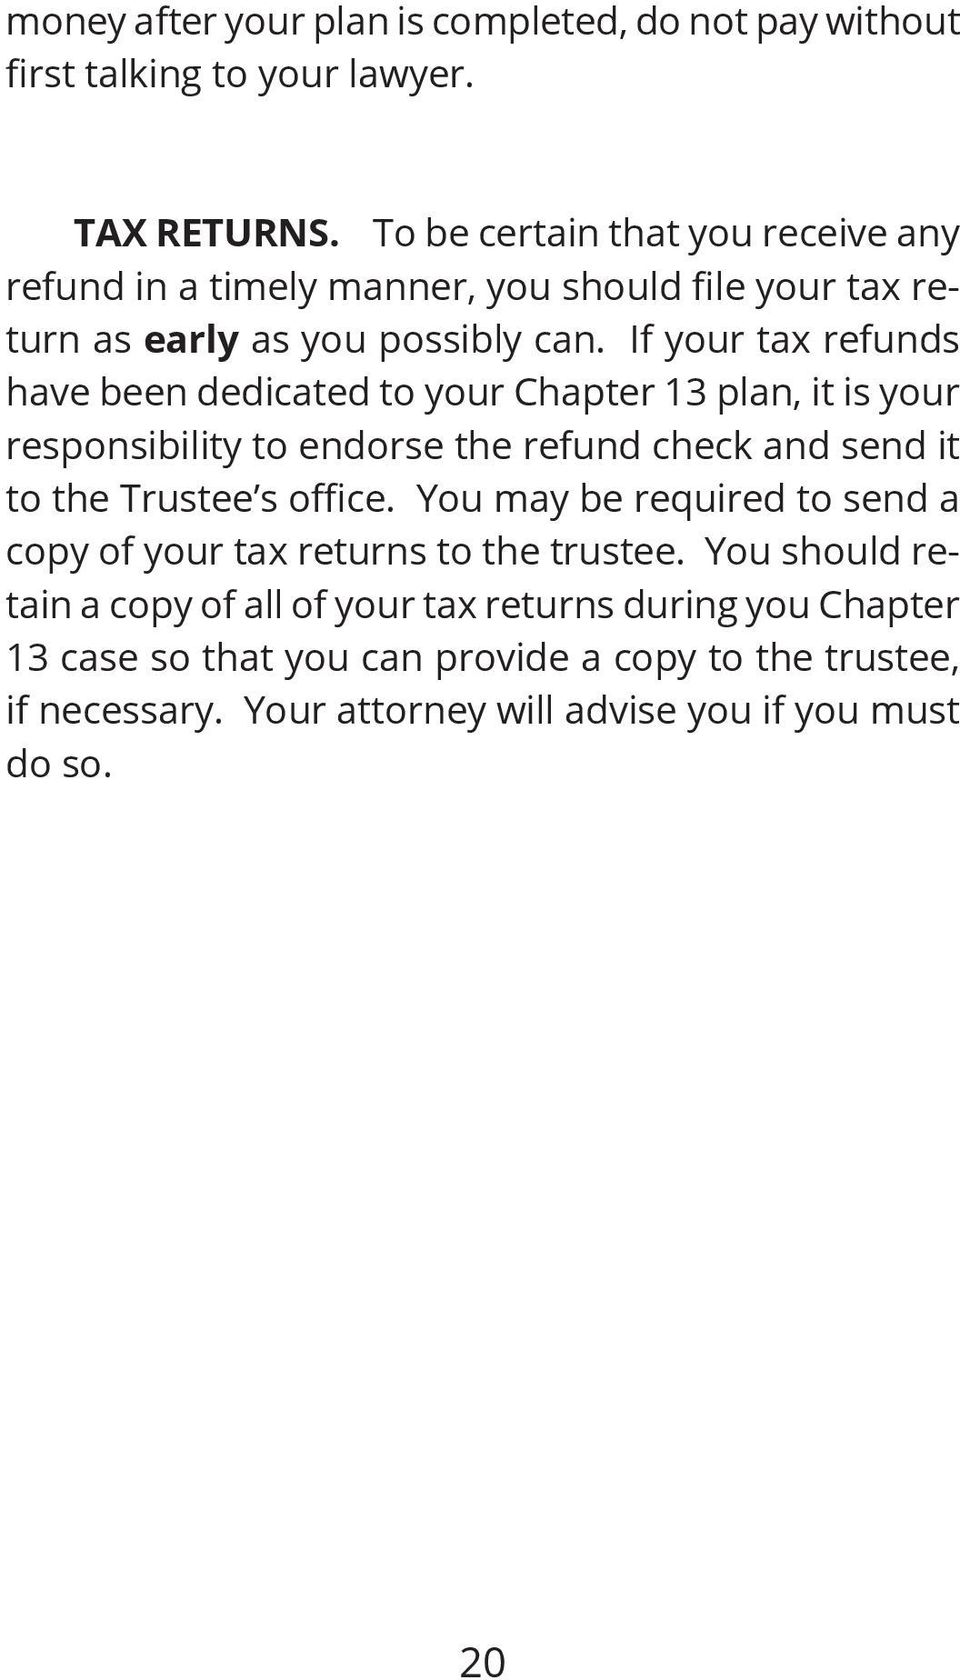 If your tax refunds have been dedicated to your Chapter 13 plan, it is your responsibility to endorse the refund check and send it to the Trustee s office.